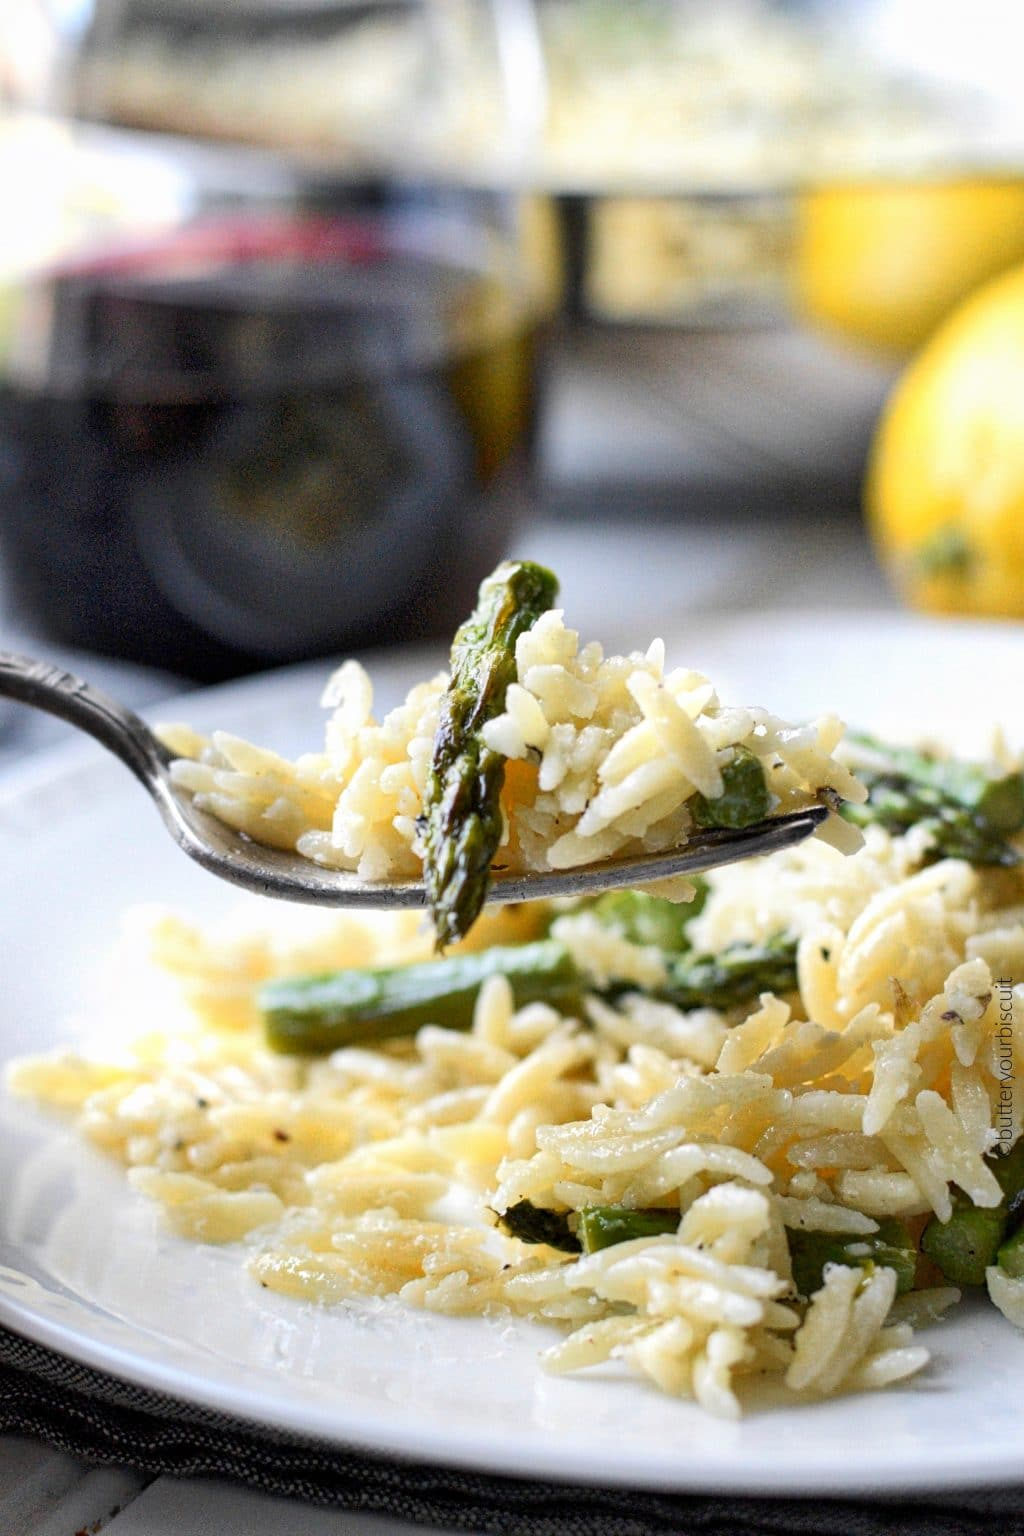 lemon garlic parmesan orzo with roasted asparagus with a bit on fork